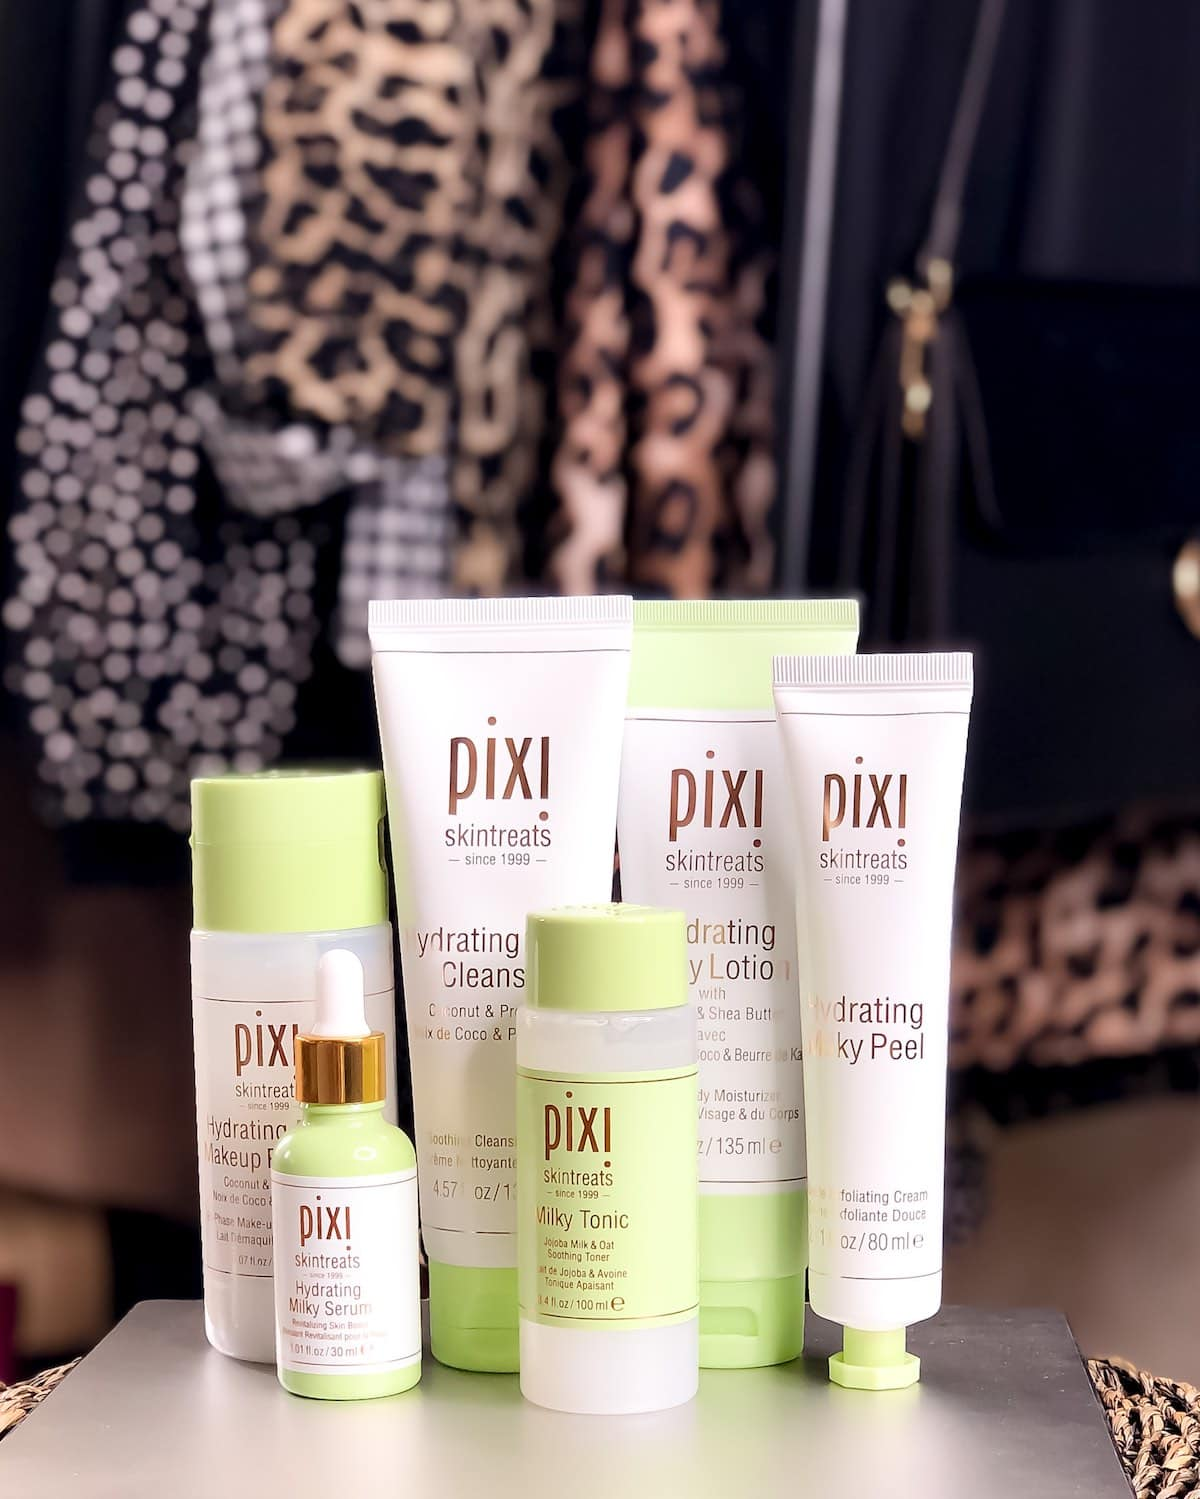 Is Pixi skincare any good? This brand has a wide variety of skin care and makeup products that promise nothing but glowing skin. Here's my no-fluff Pixi Skintreats review of their Hydrating Milky collection.